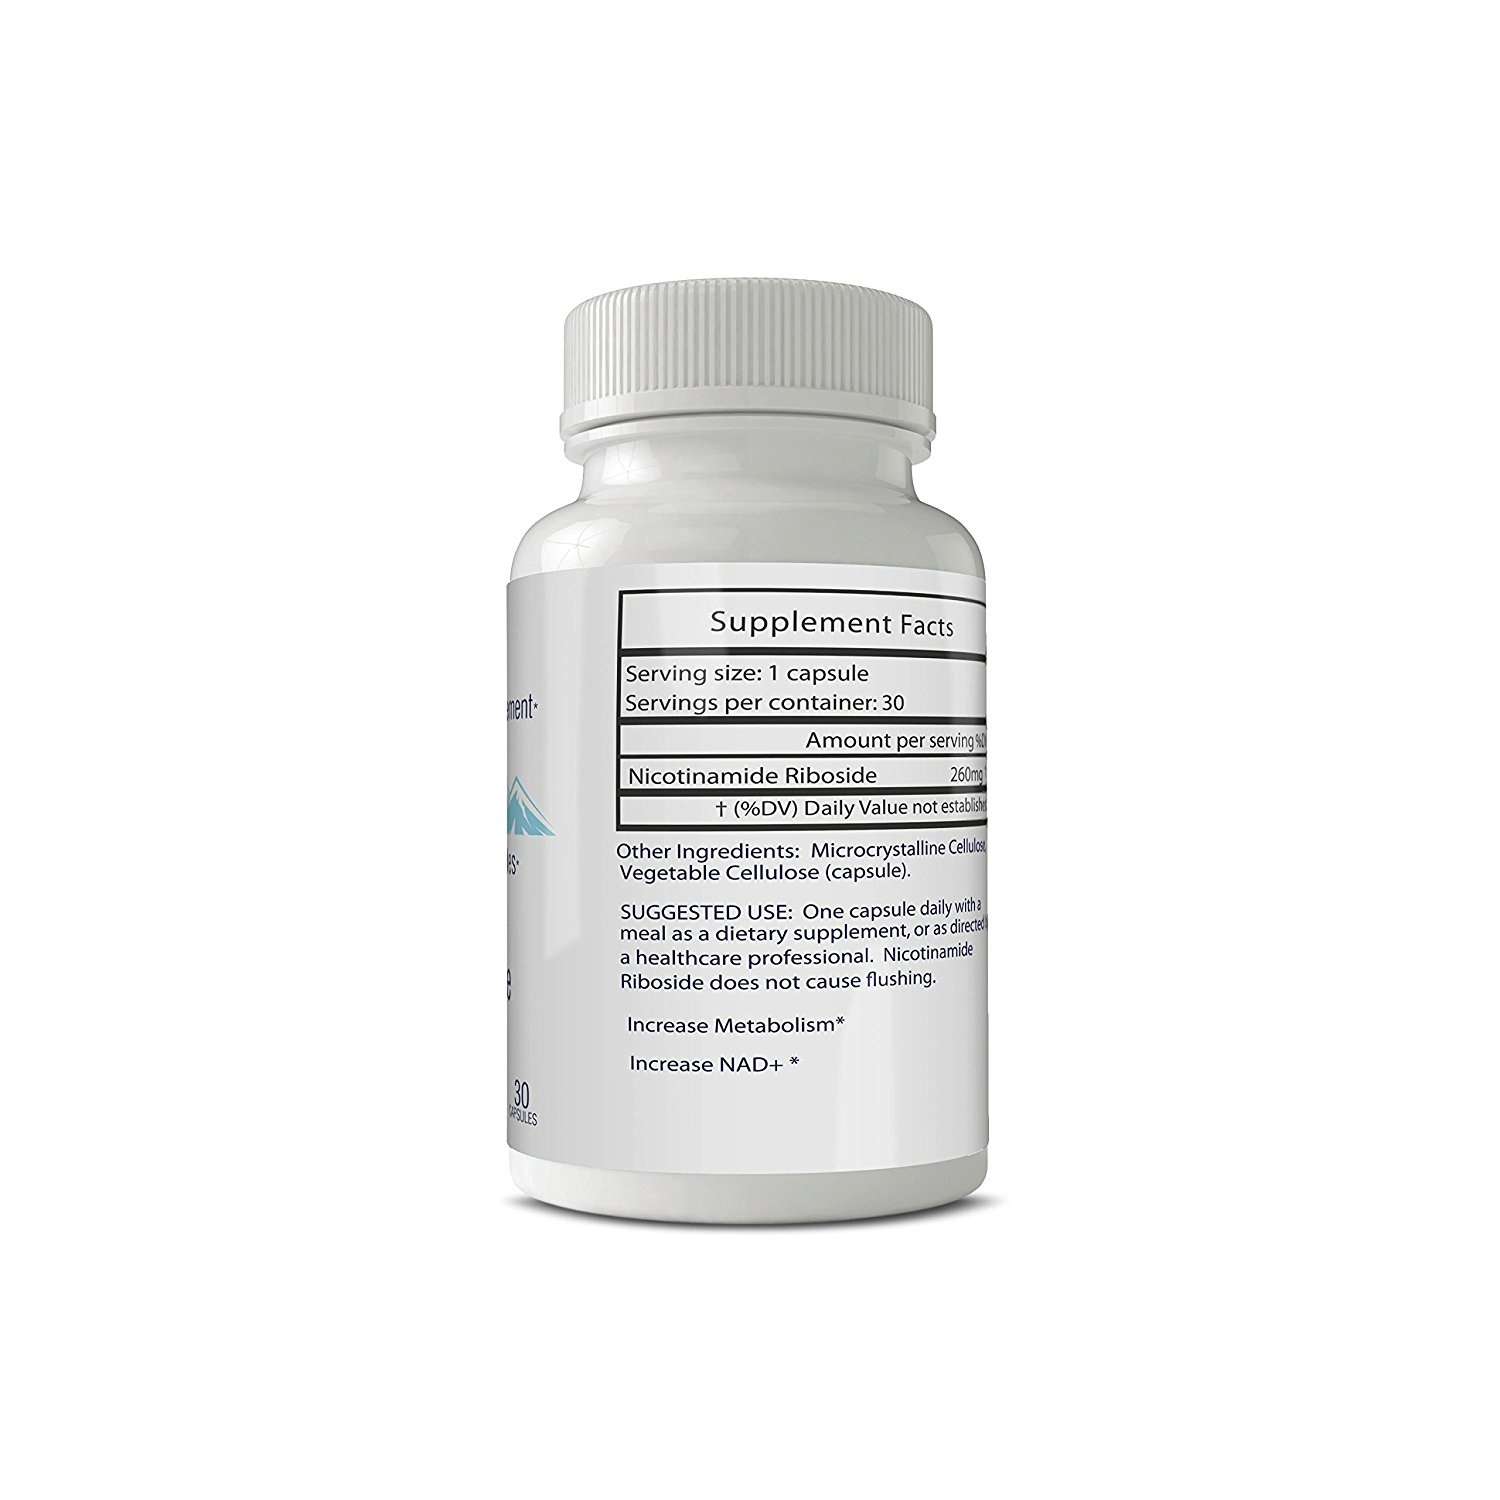 Ribovail - NR Nicotinamide Riboside supplement NAD+ booster - 260 mg 30  Servings